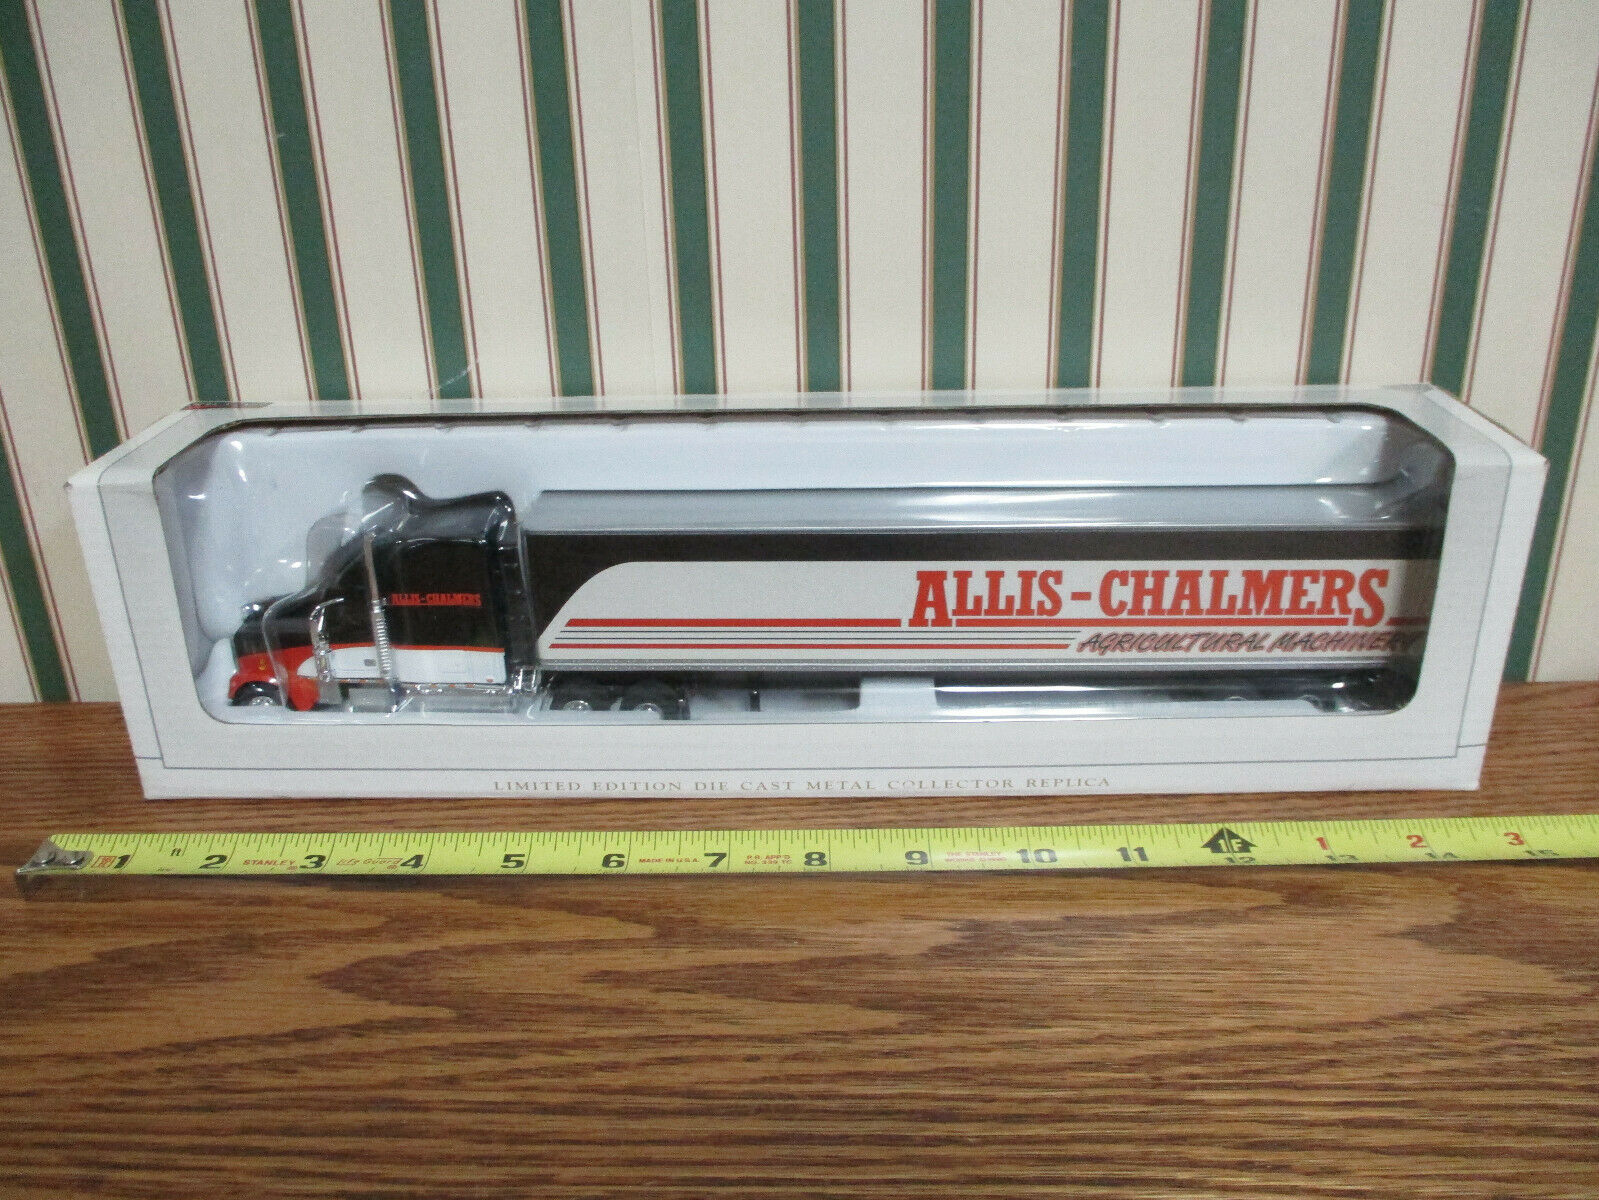 Allis-Chalmers Freightliner Semi With Van Trailer By SpecCast 1 64th Scale